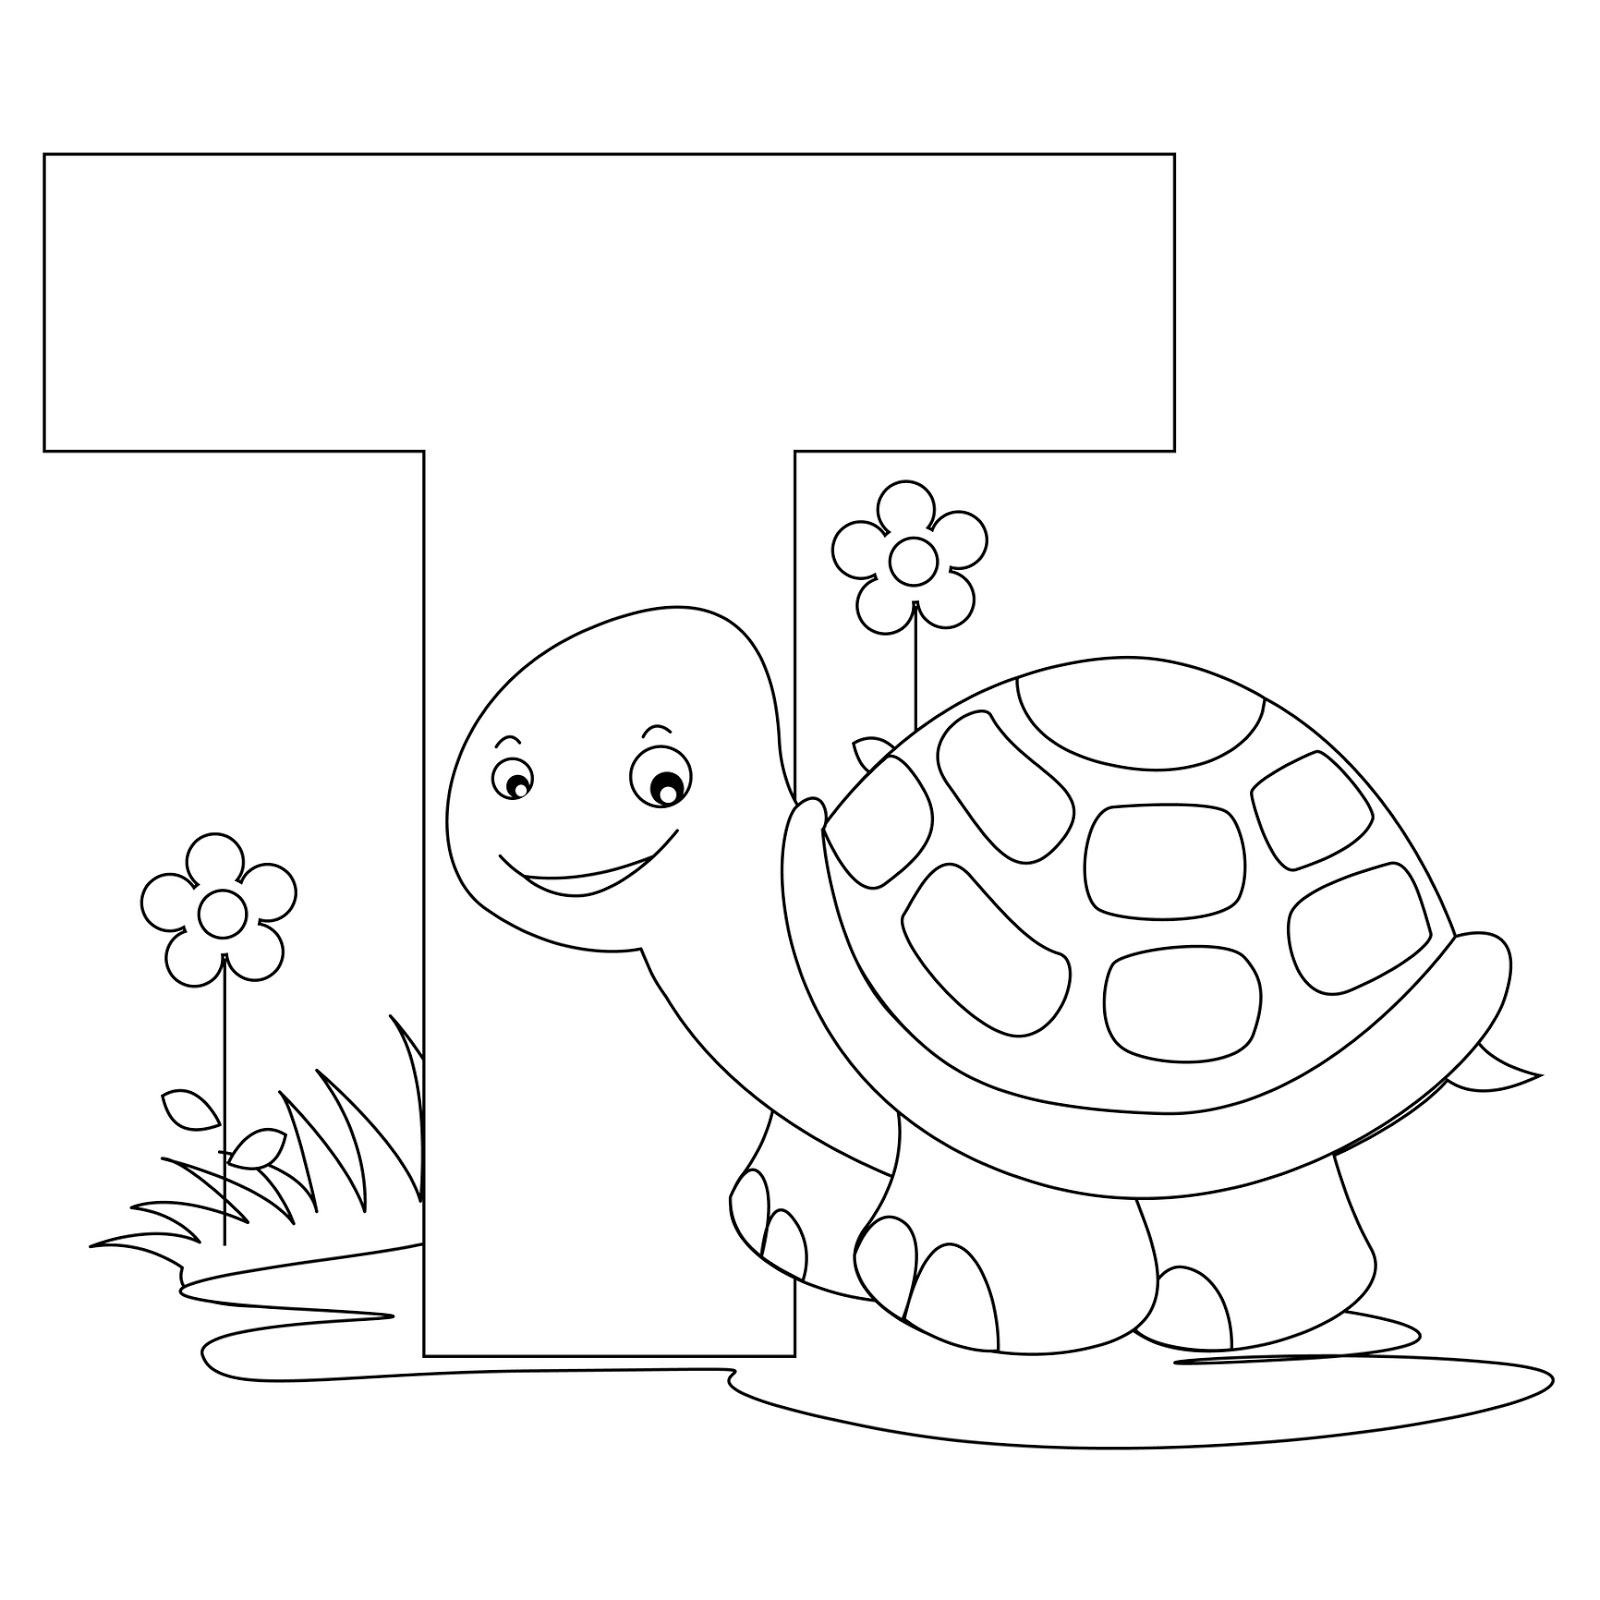 1600x1600 Alphabet Coloring Pages For Preschool Letter D Words Pictures I